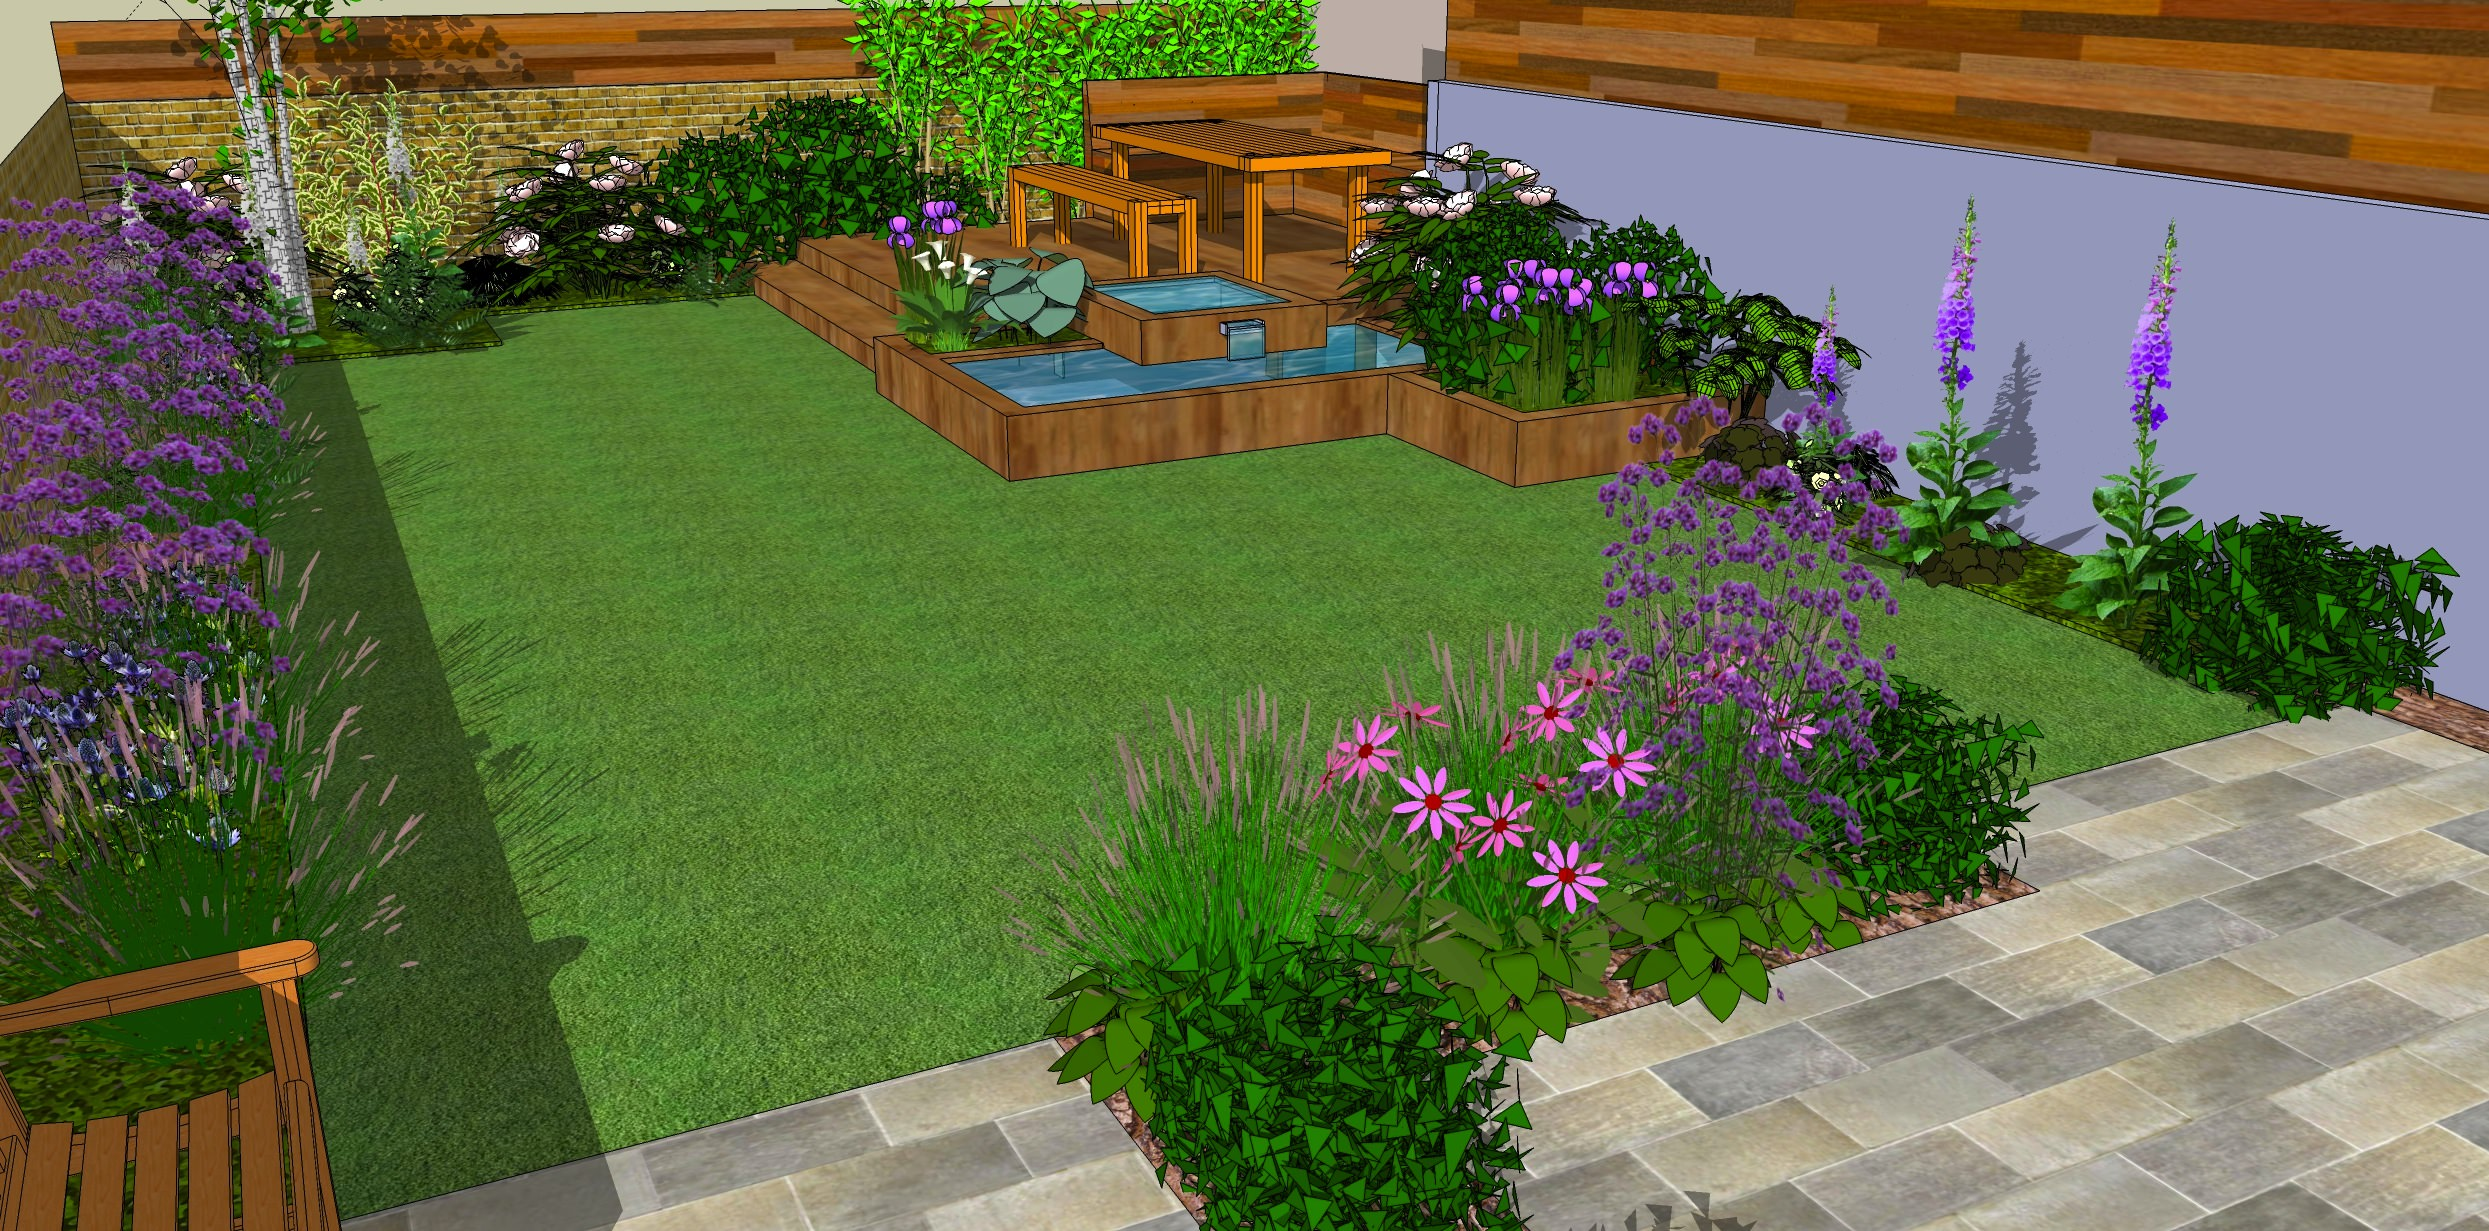 Low maintenance garden designs garden club london for Plan your garden ideas